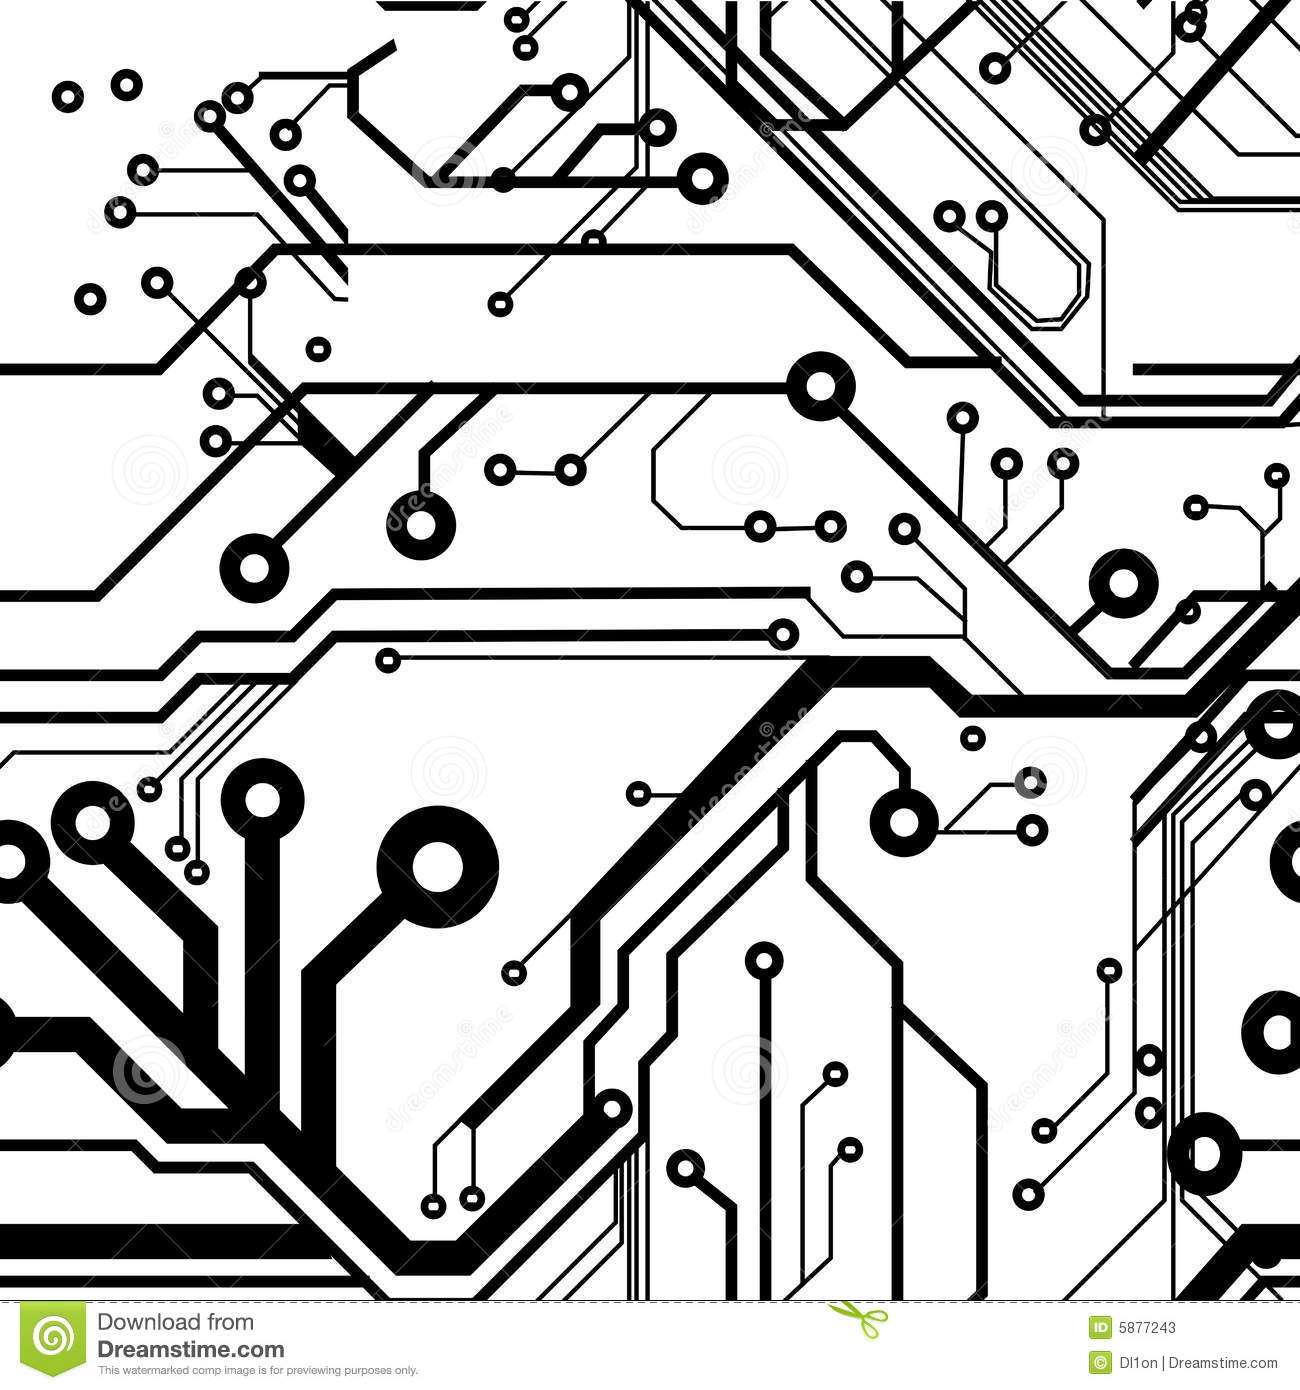 Seamless Printed Circuit Board Stock Vector